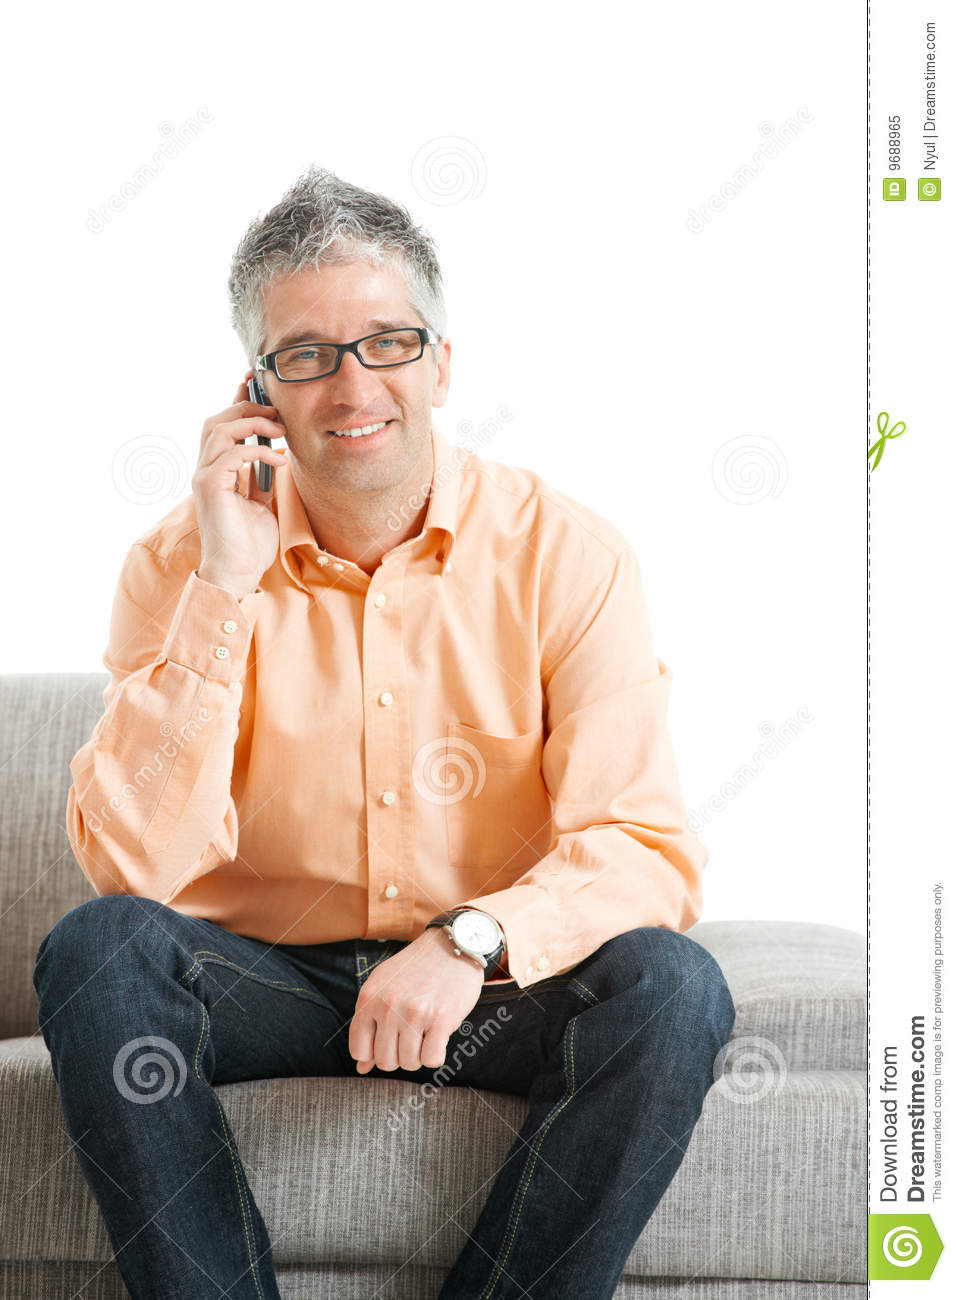 Man Talking On Mobile Phone Royalty Free Stock Photo